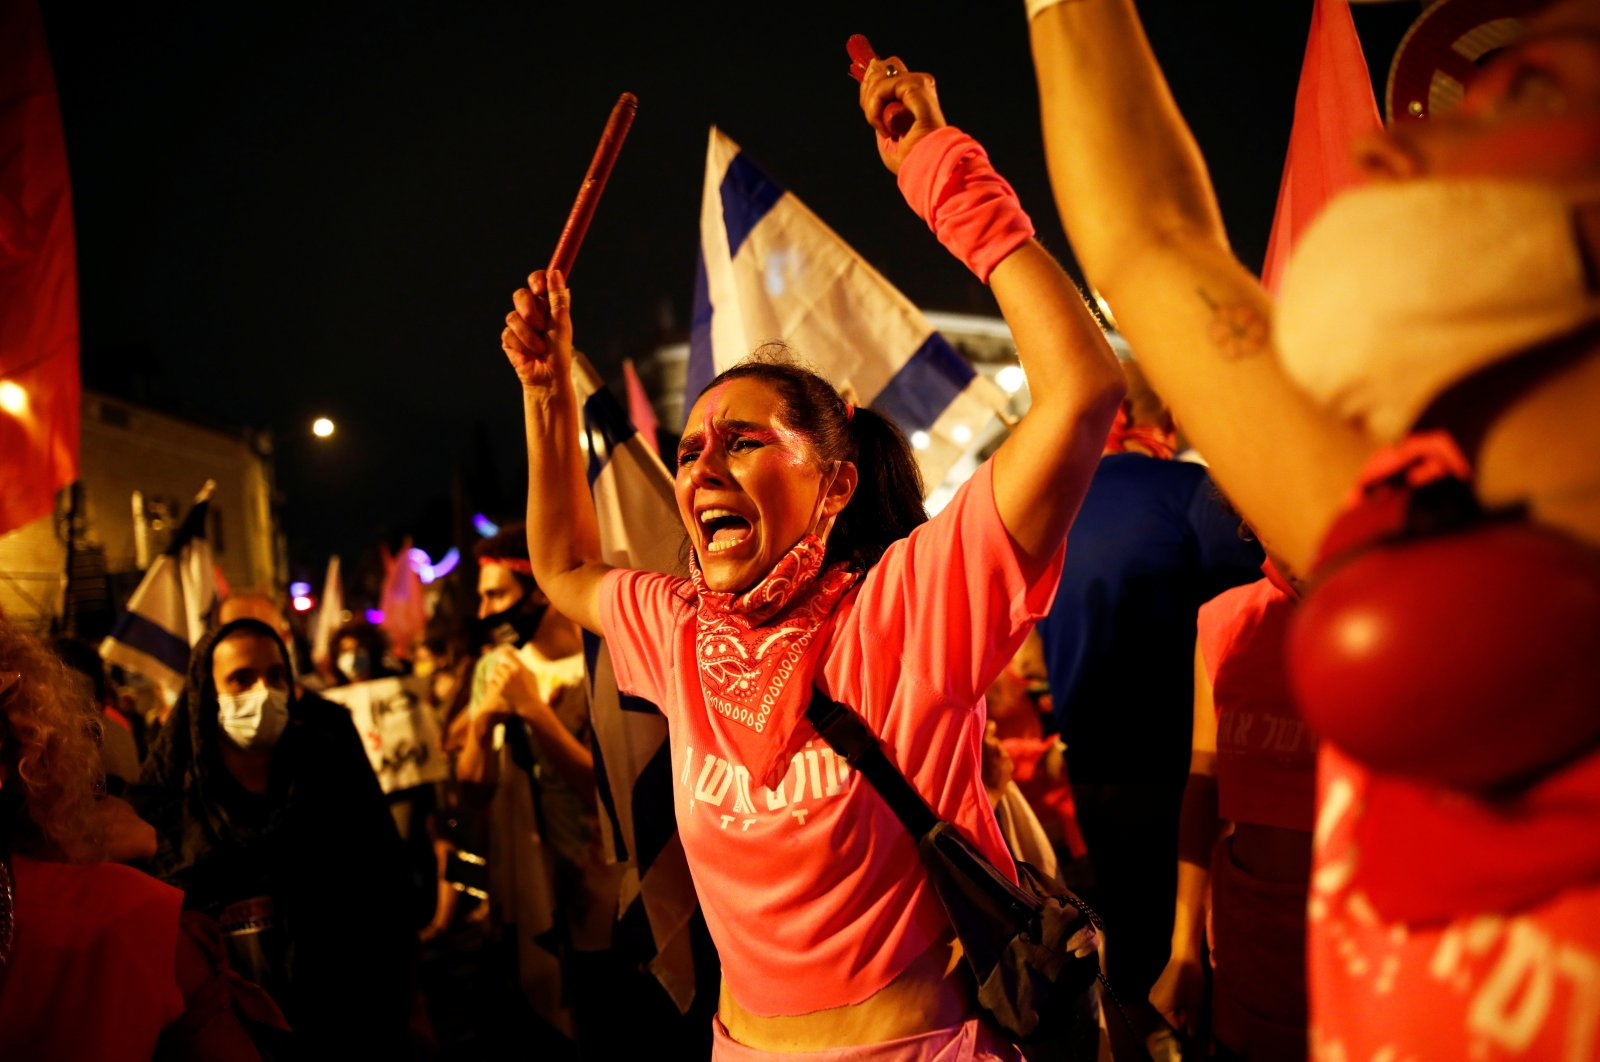 """""""The Pink Front,"""" a group of protesters demanding Israeli Prime Minister Benjamin Netanyahu to step down over corruption allegations, during a weekly anti-Netanyahu demonstration, in Jerusalem, Israel, Oct. 24, 2020. (Reuters Photo)"""